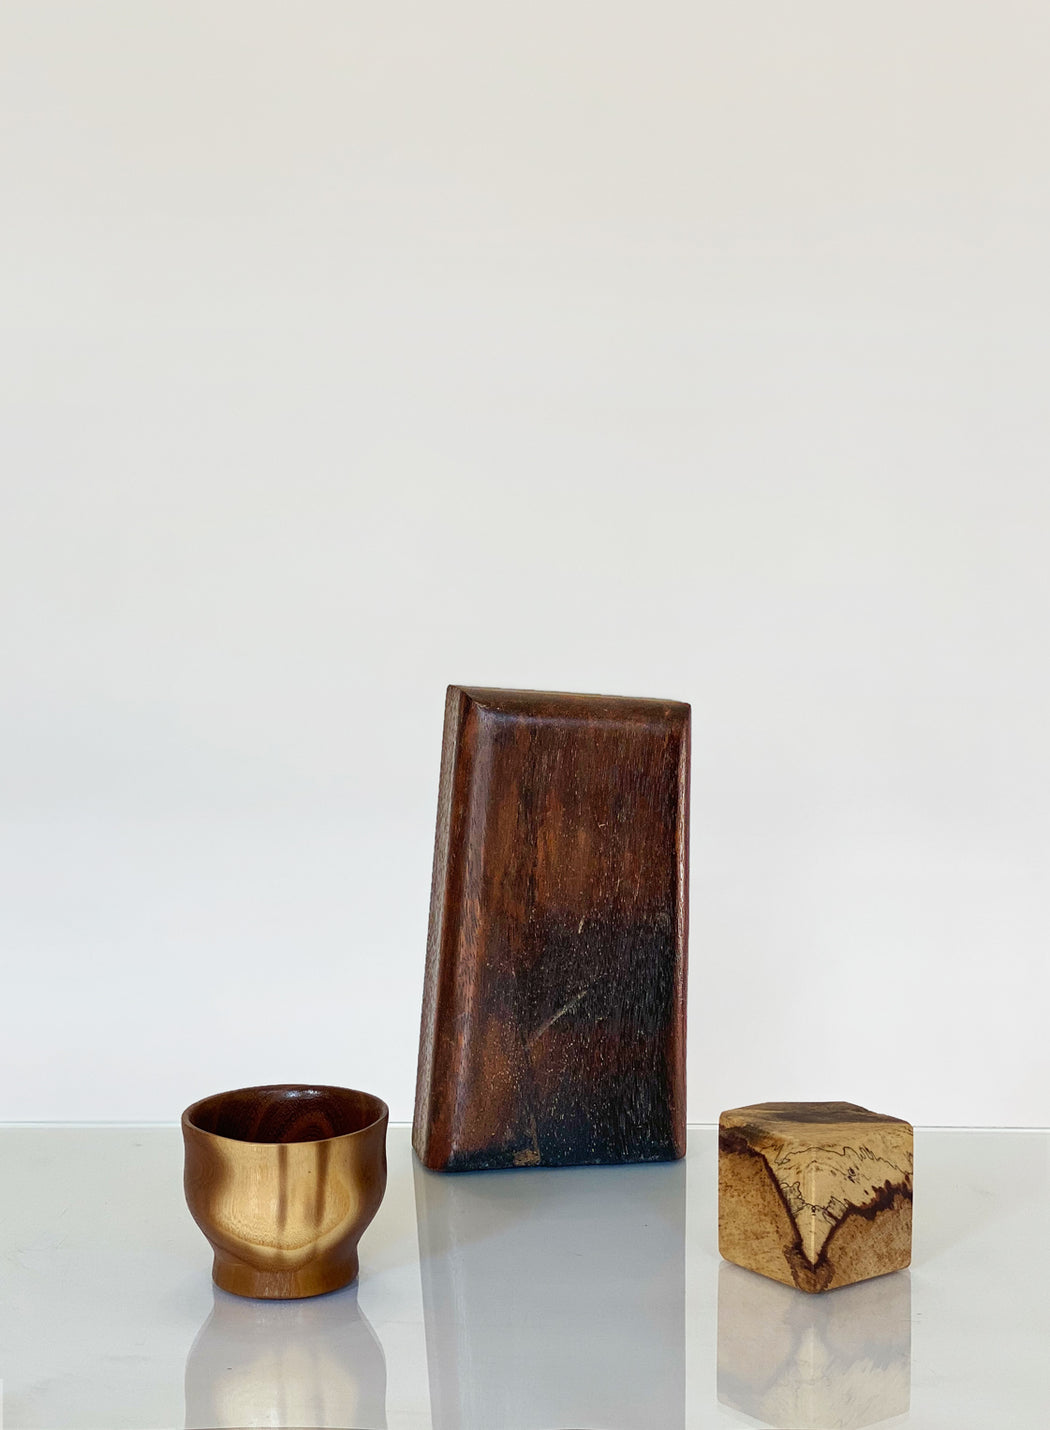 Wood Set from Sri Lanka by Tucker Robbins